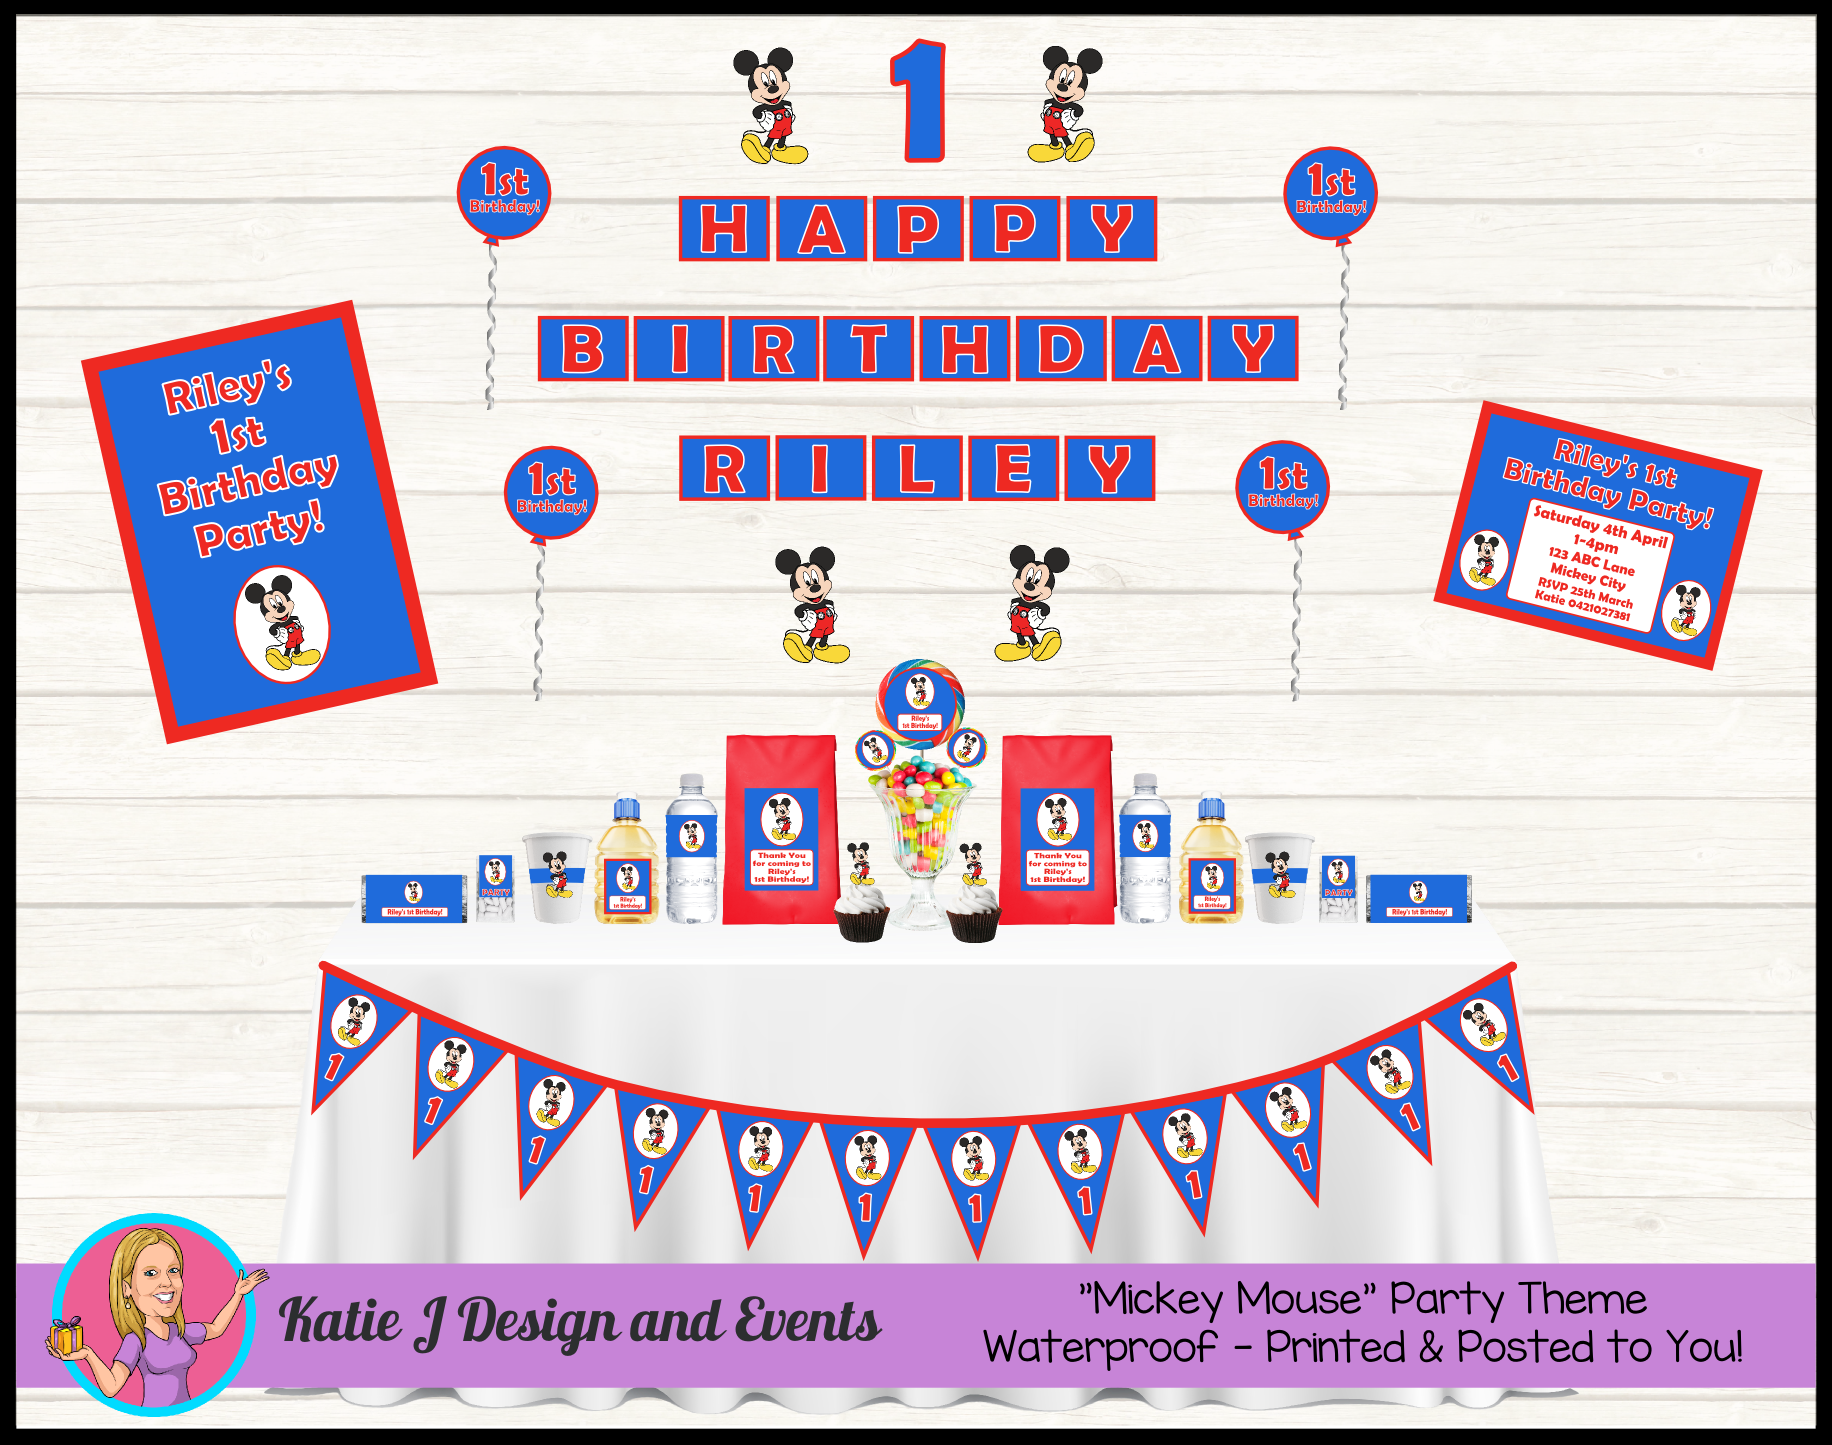 Blue Mickey Mouse Personalised Birthday Party Decorations Supplies Packs Shop Online Australia Banners Bunting Wall Display